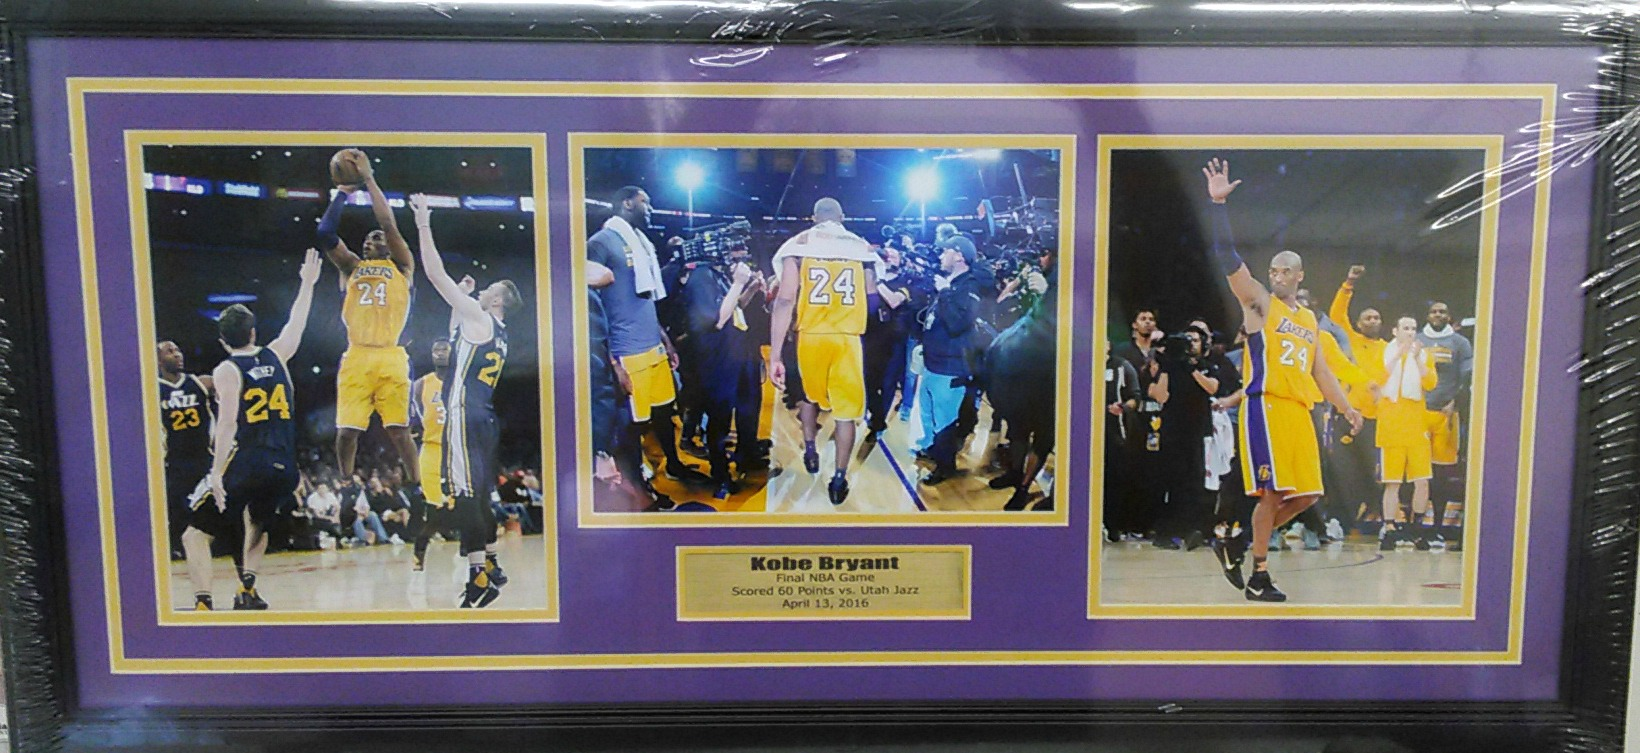 Kobe Bryant Last Game collage